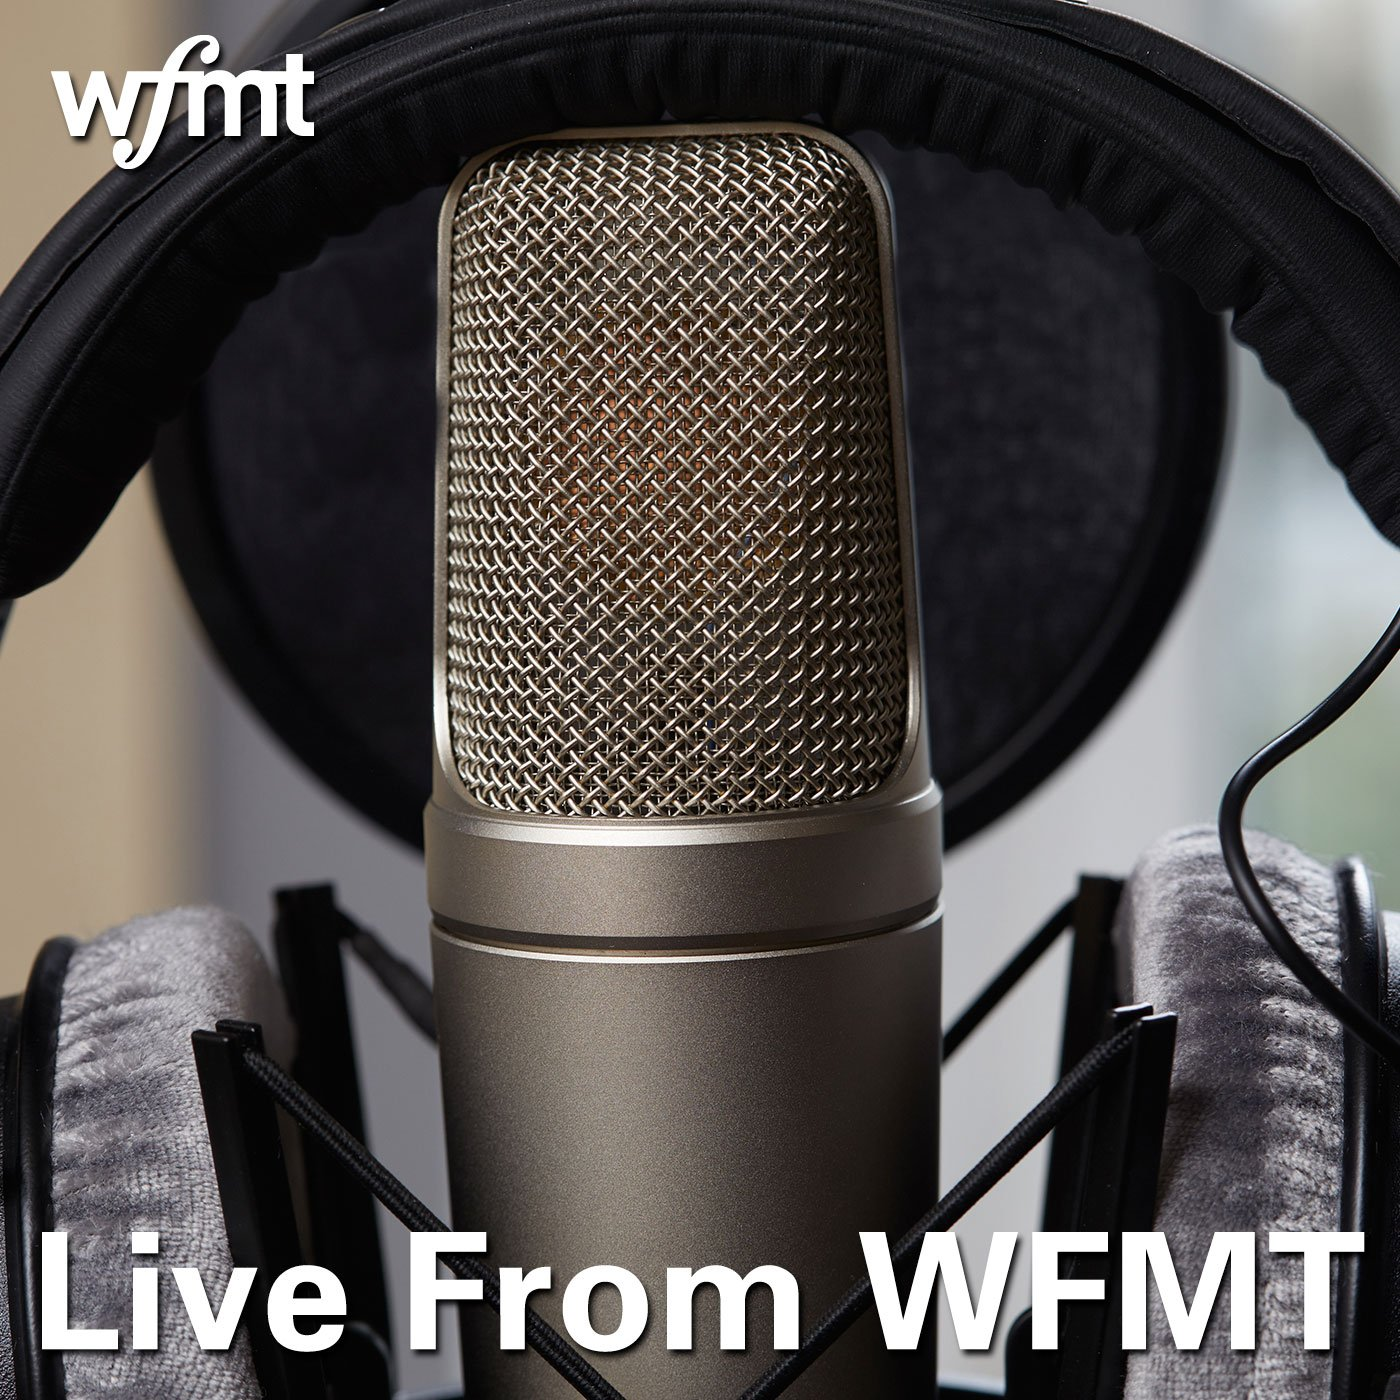 Live from WFMT podcast